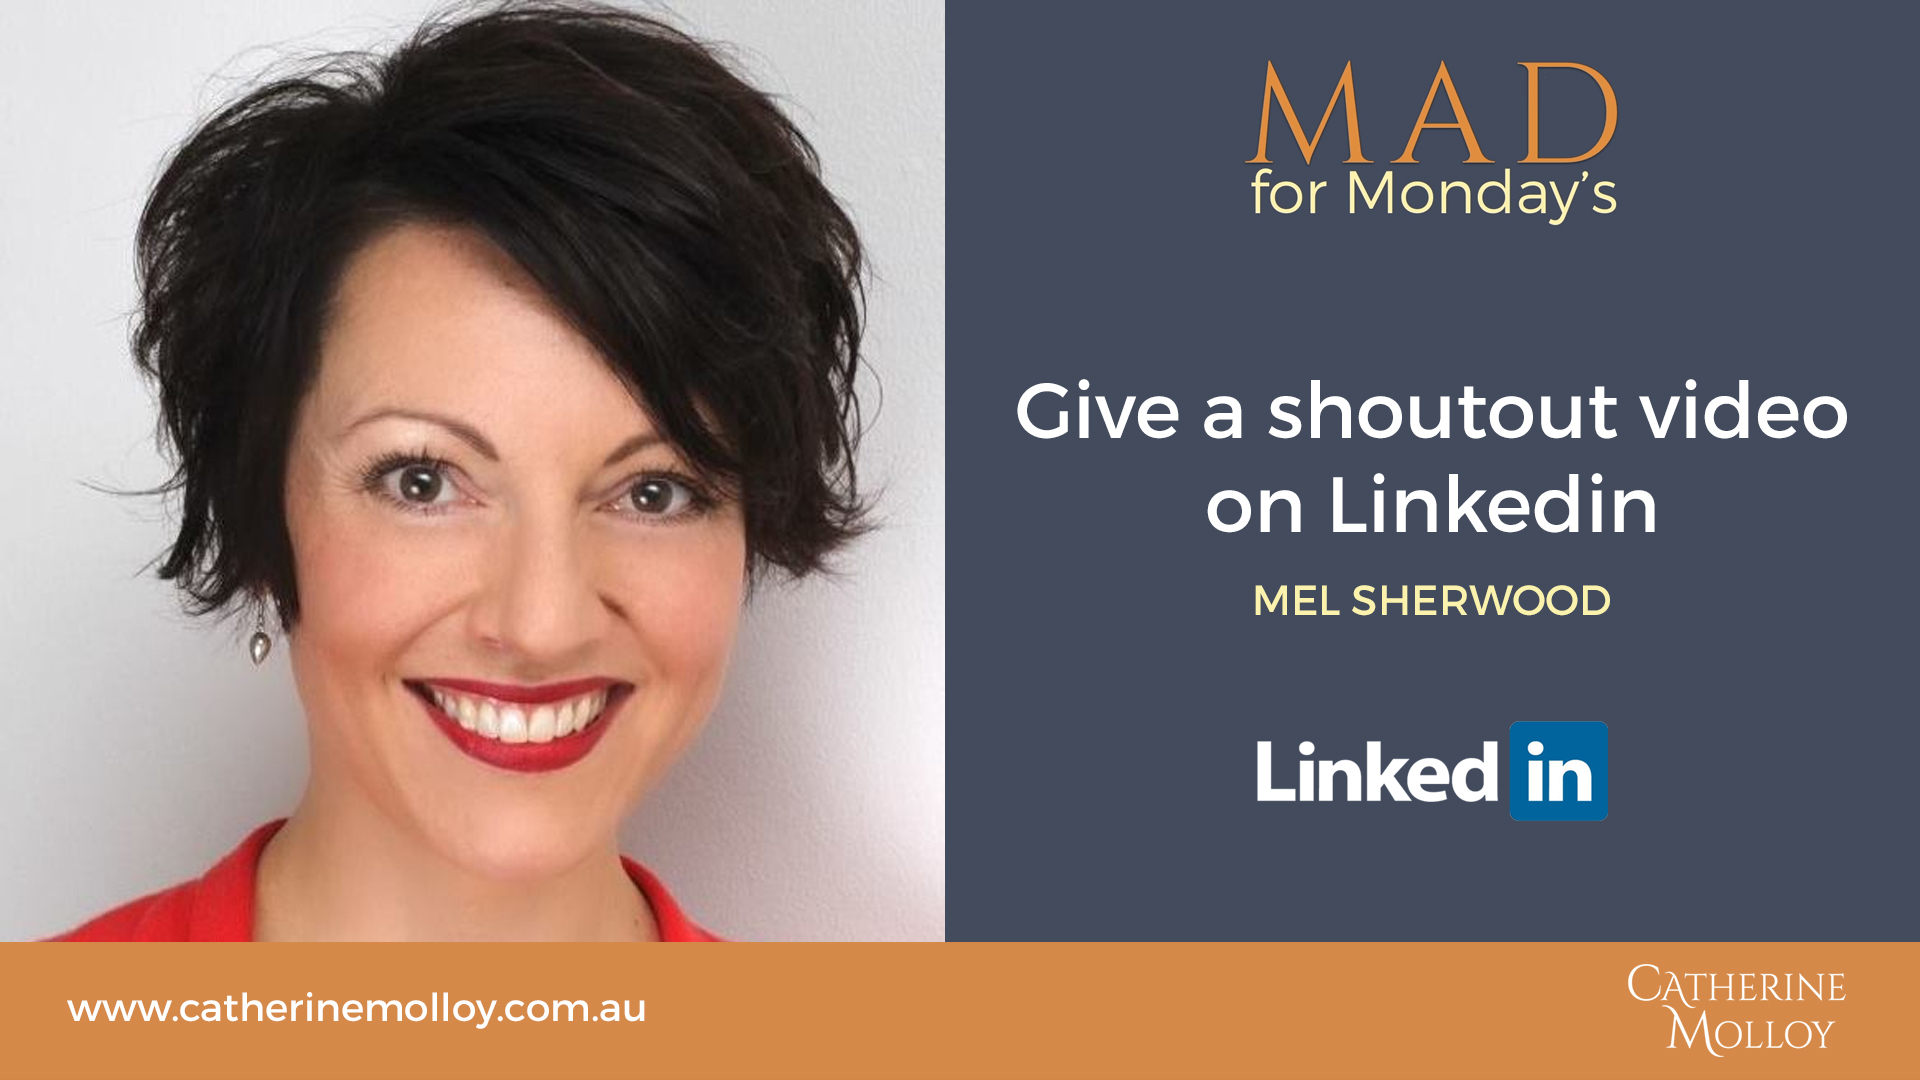 MAD for Monday's – Give a shoutout video on Linkedin